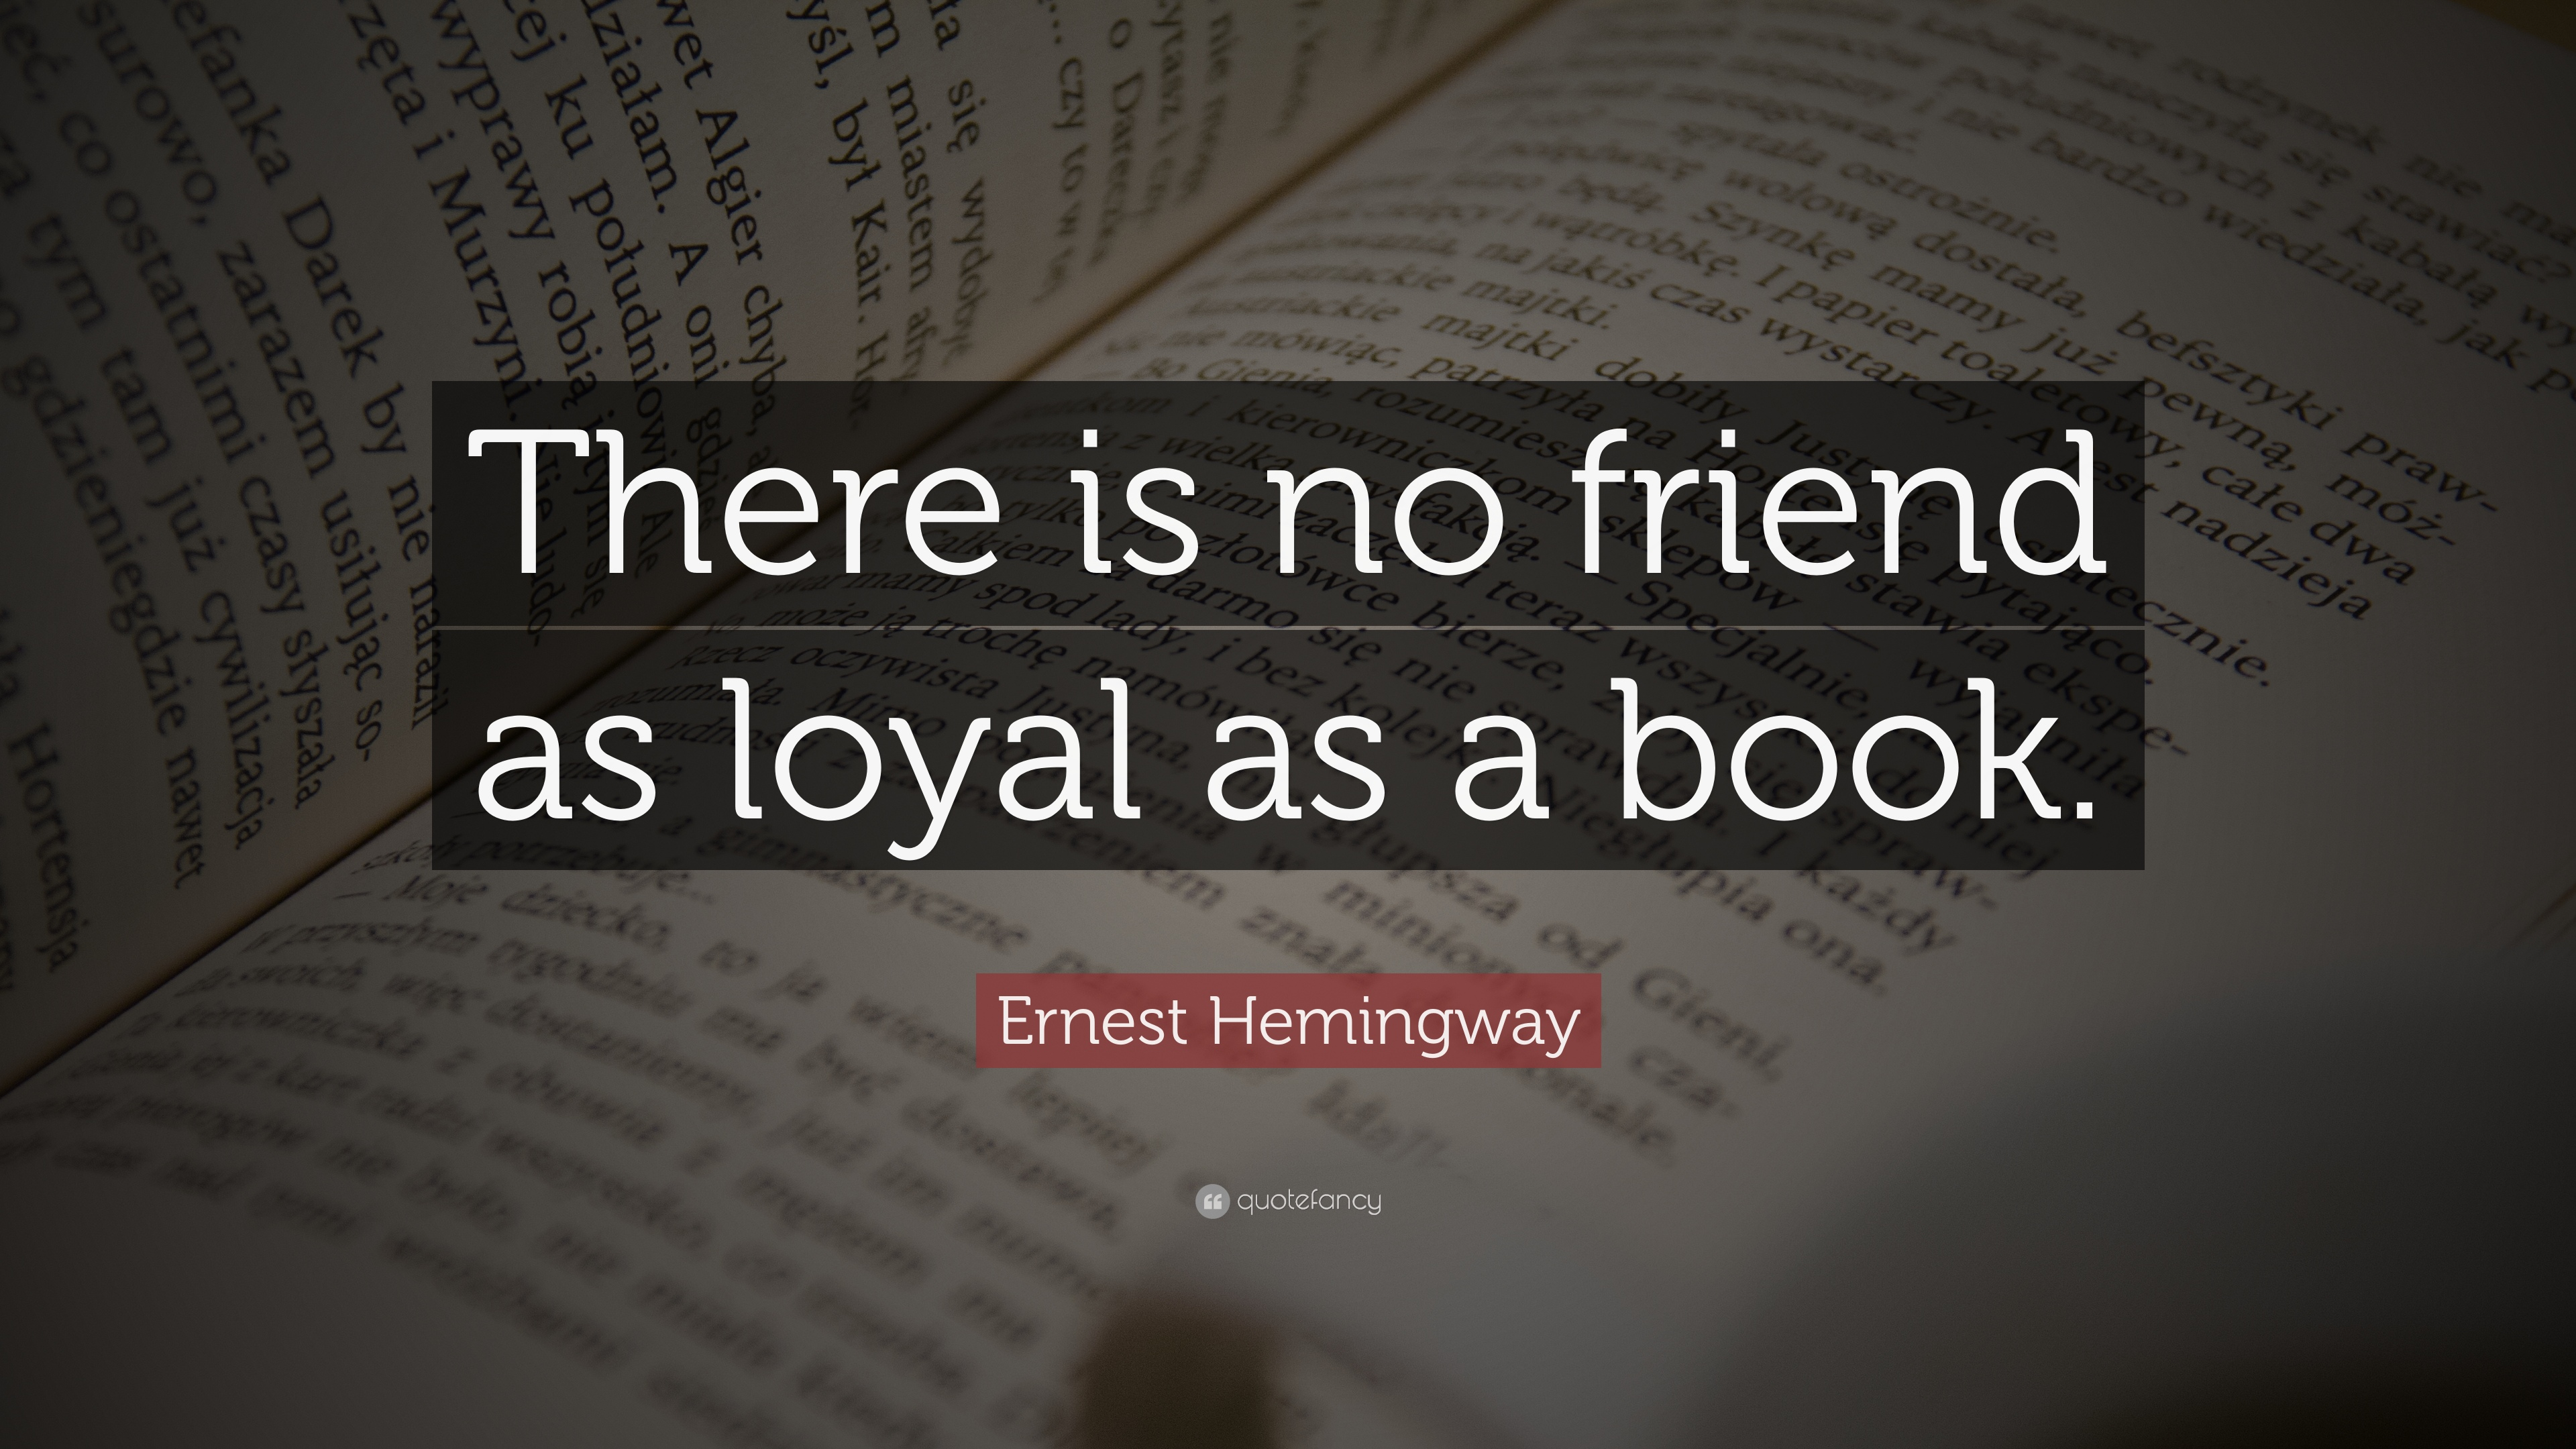 Quotes From Books Captivating Quotes About Books And Reading 22 Wallpapers  Quotefancy